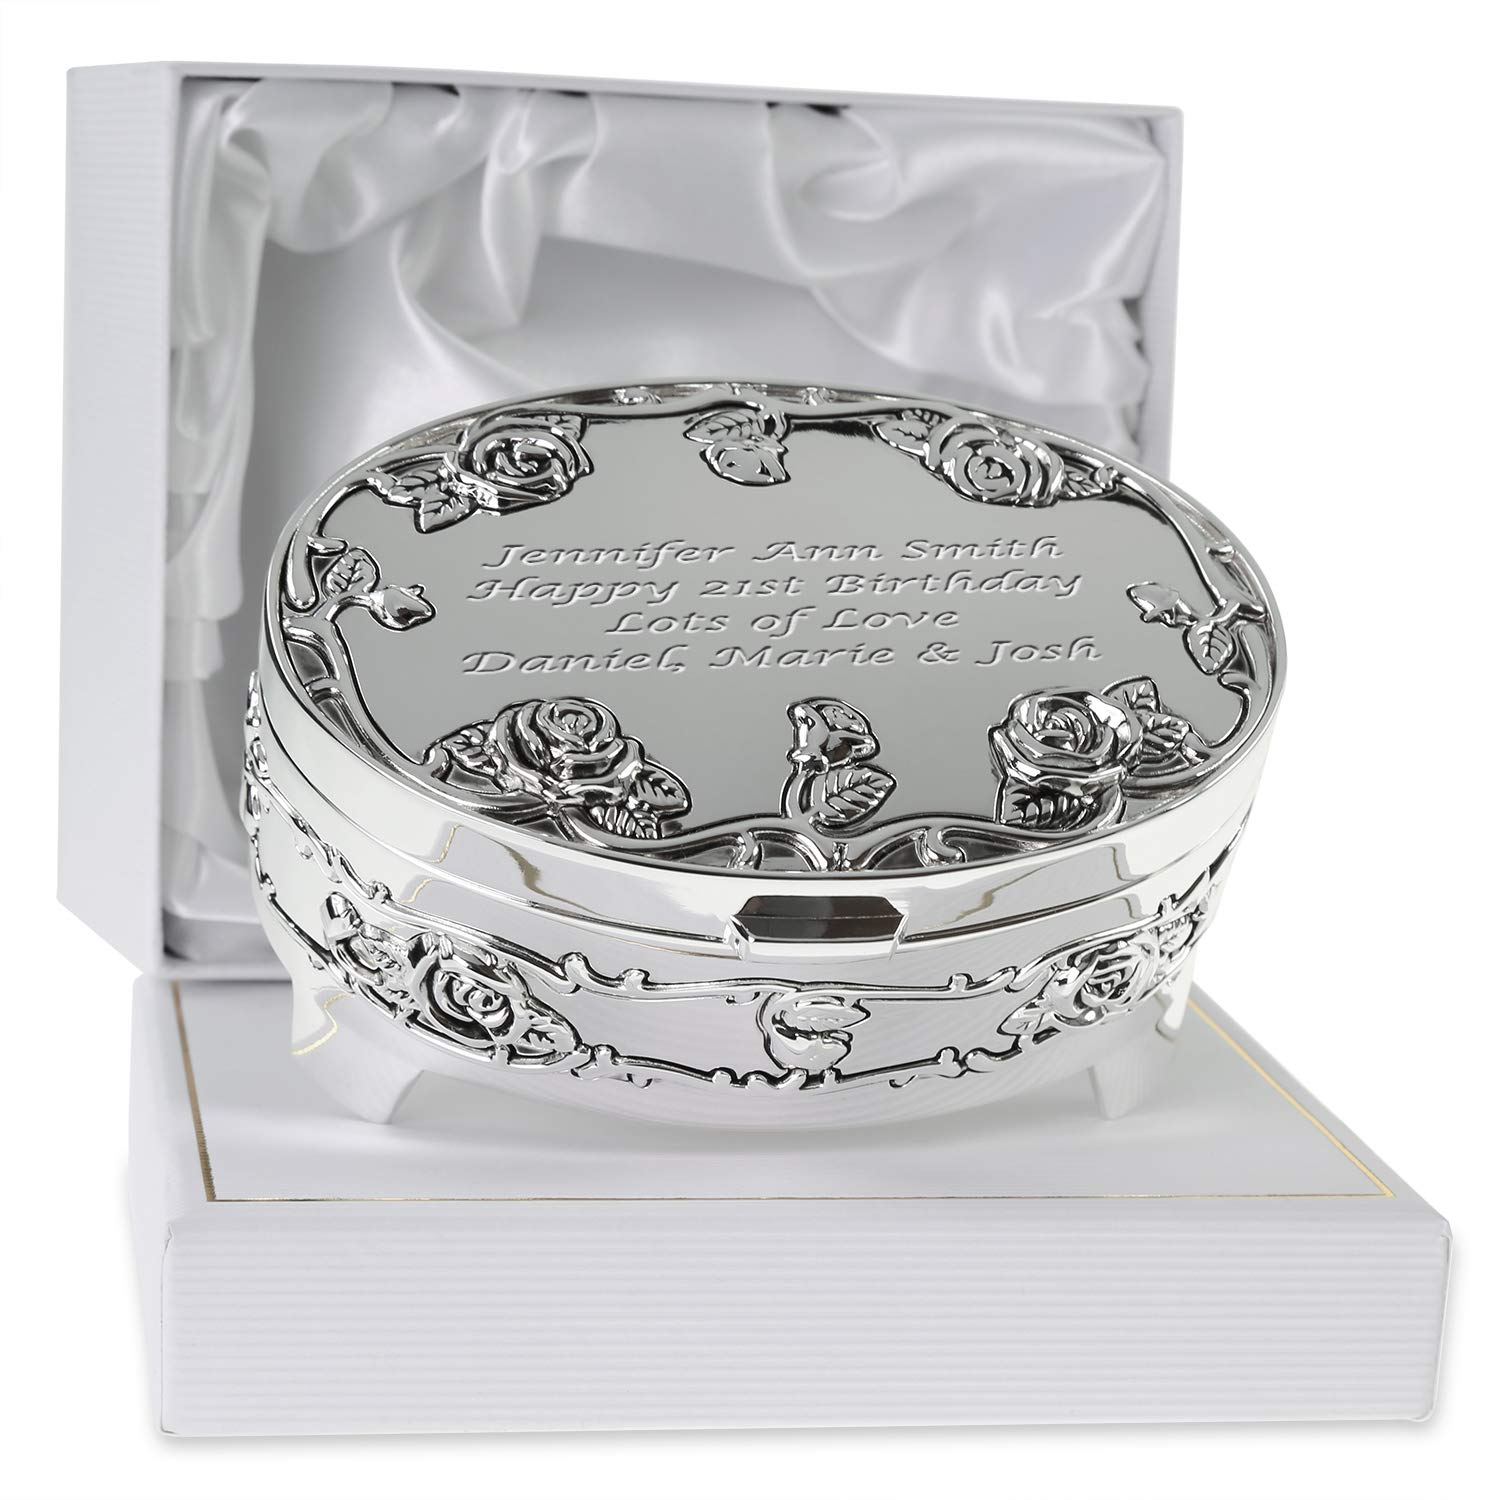 De Walden Girlu0027s 21st Birthday Gift Engraved Silver Plated Rose Trinket Box in a Presentation Box  sc 1 st  Amazon UK & Daughter 21st Birthday Gifts for Her: Amazon.co.uk